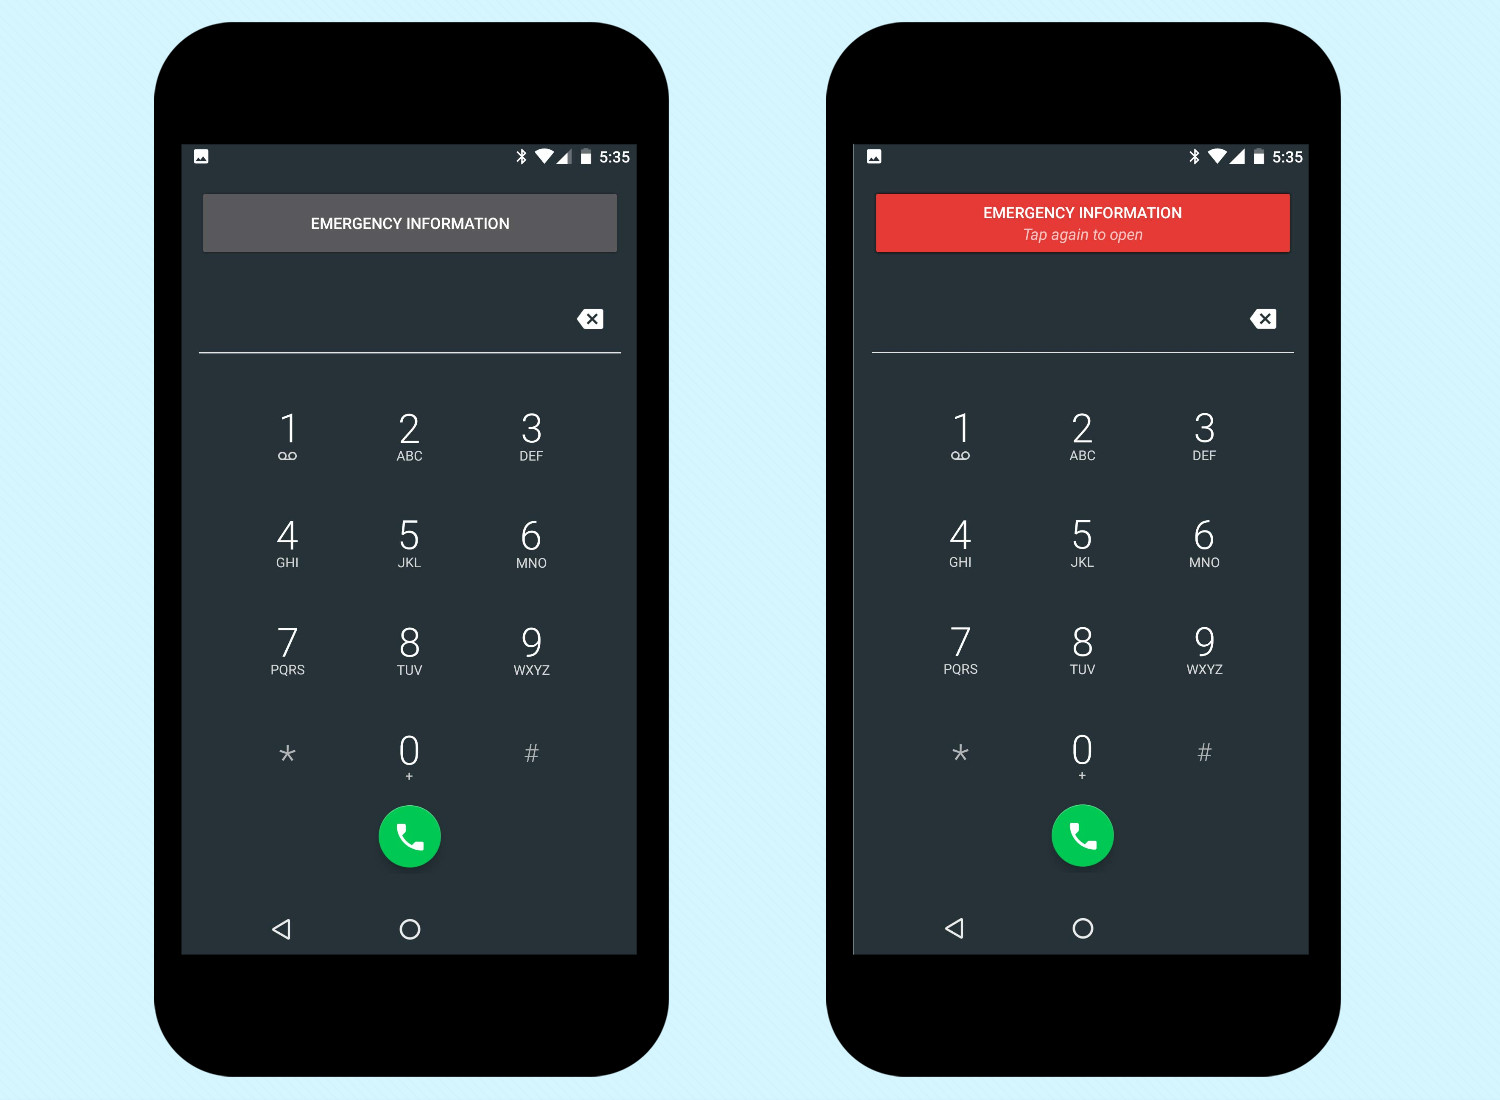 Add Emergency Info in Android Nougat - Tap Emergency button